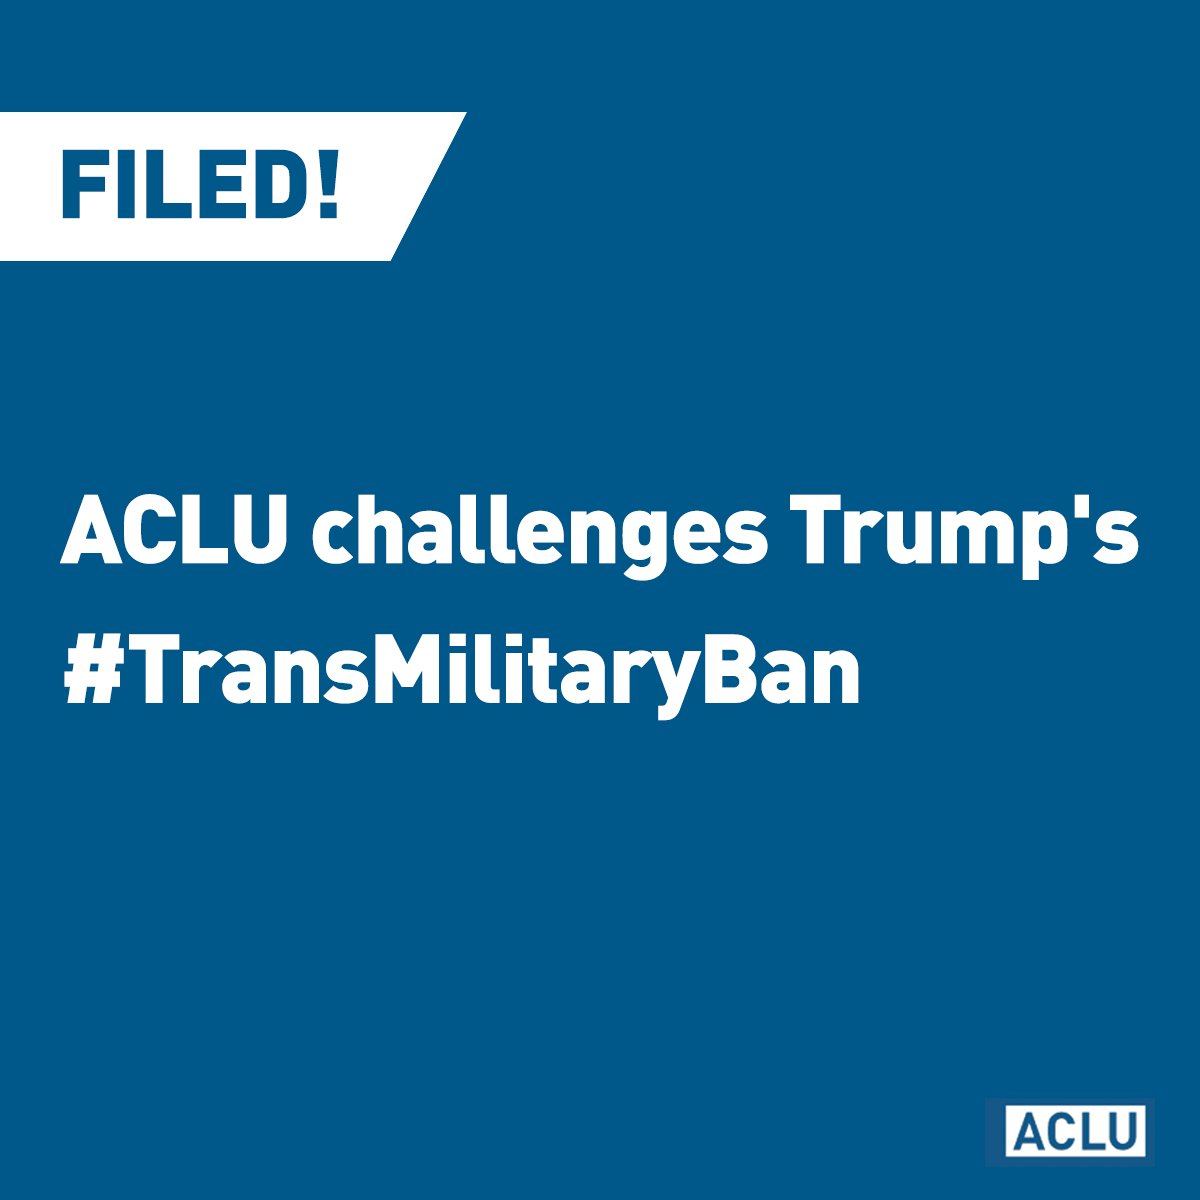 BREAKING: We're taking @realDonaldTrump to court to challenge the unconstitutional transgender military ban.